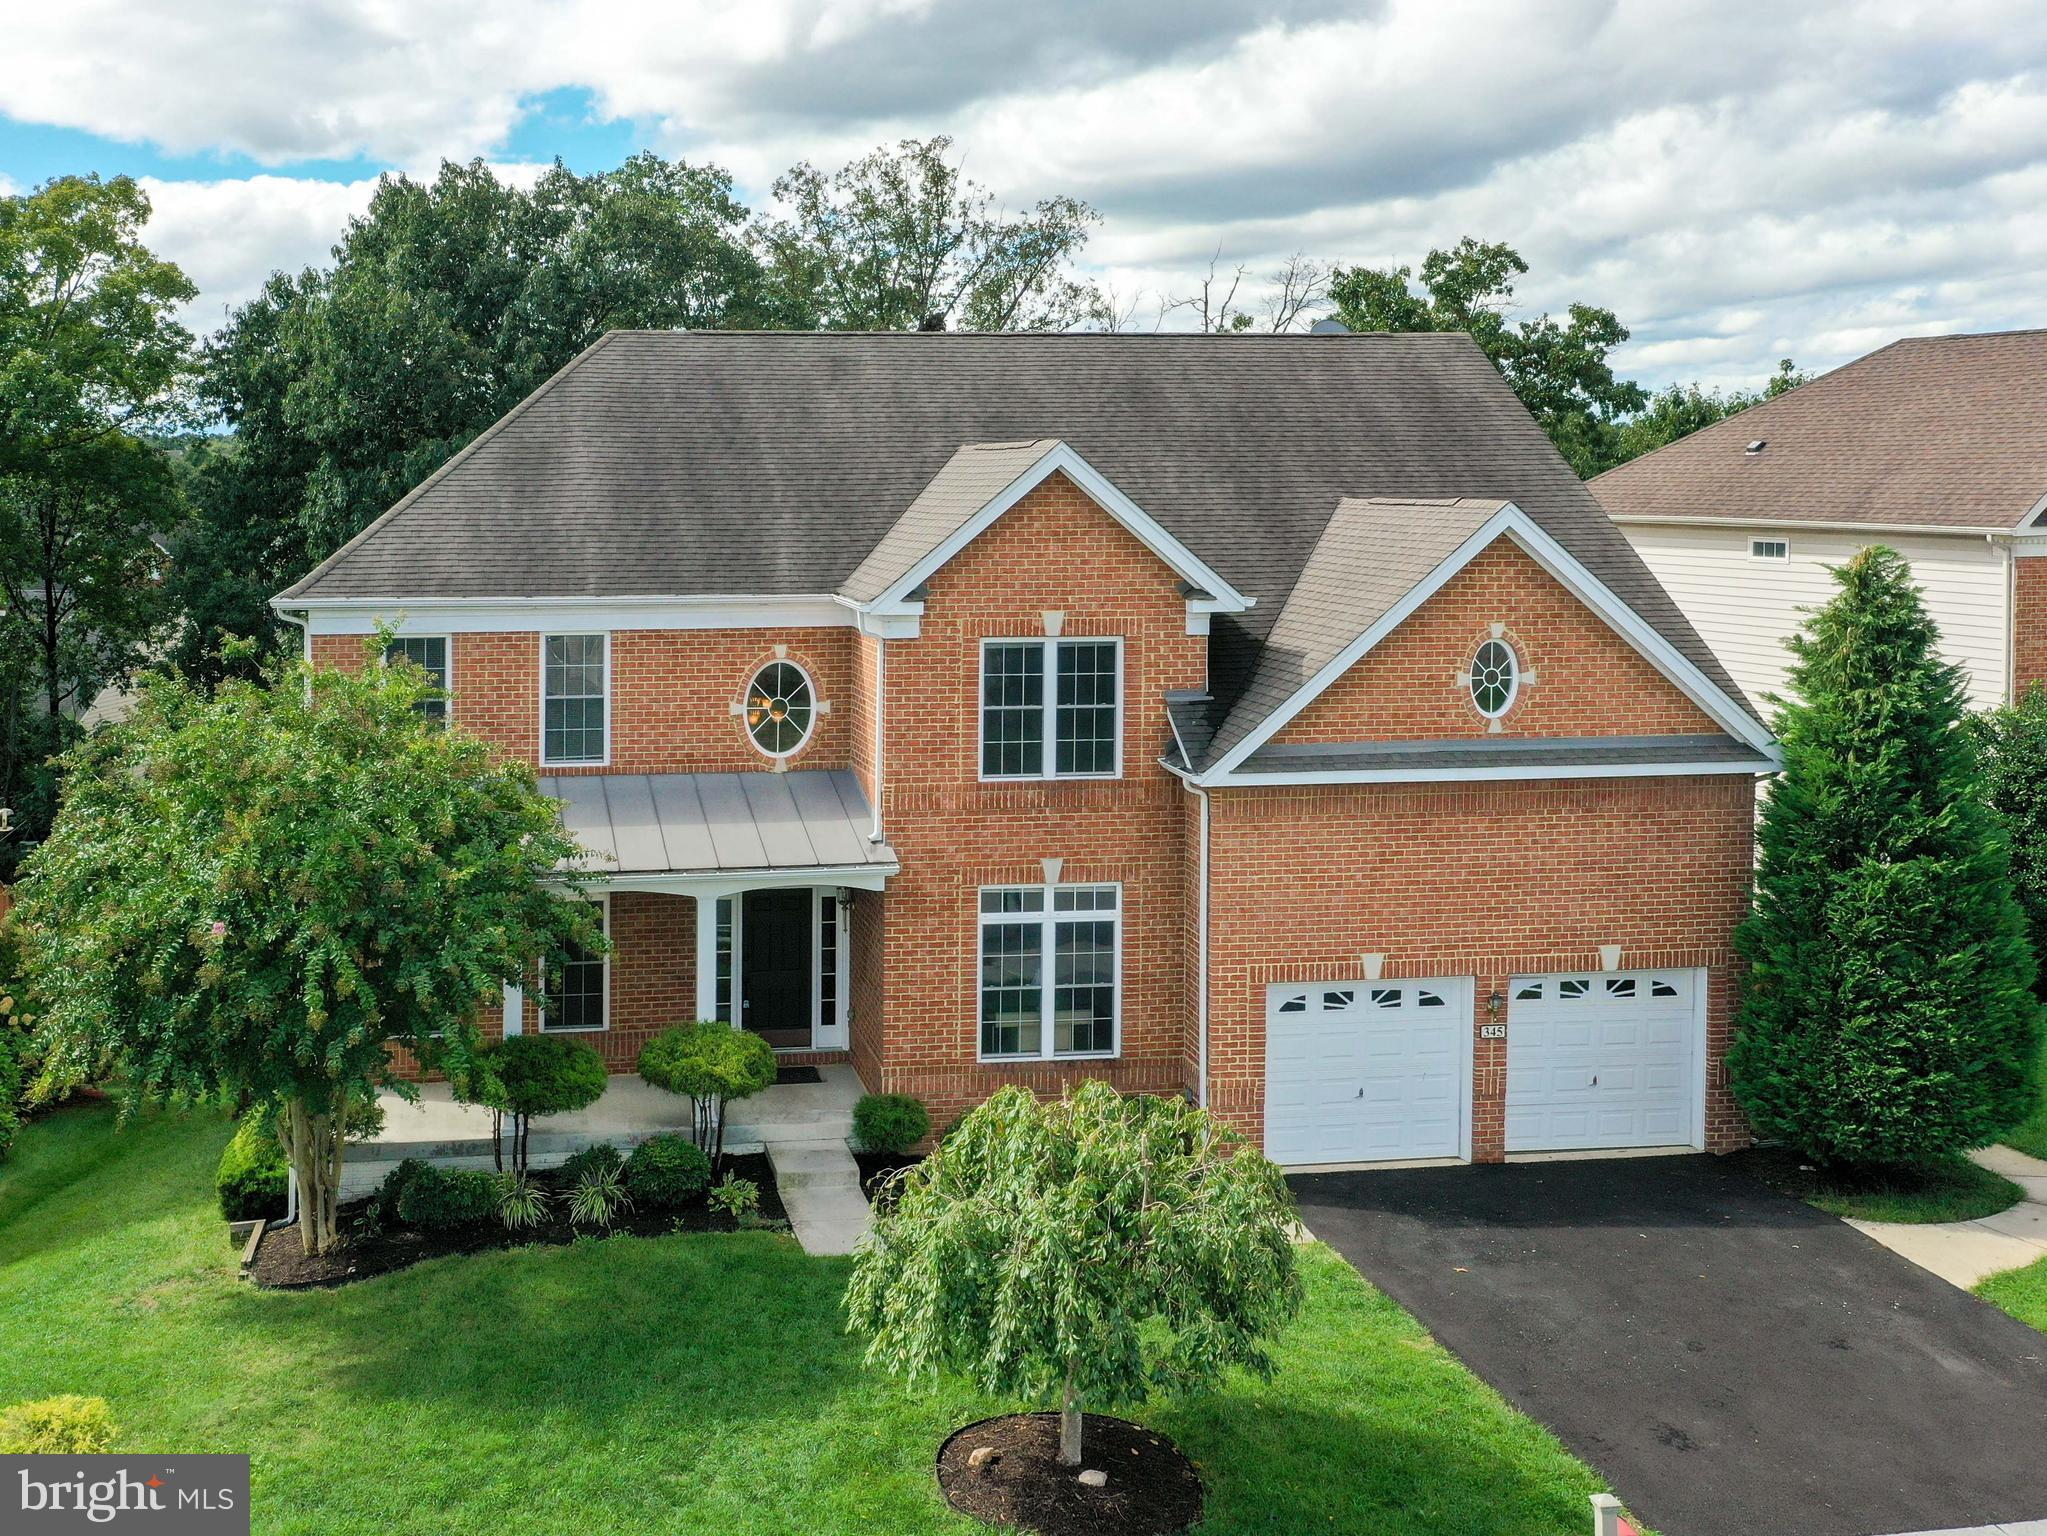 Welcome to Twin Lakes Overlook!  This light, bright, and airy single-family home features a private